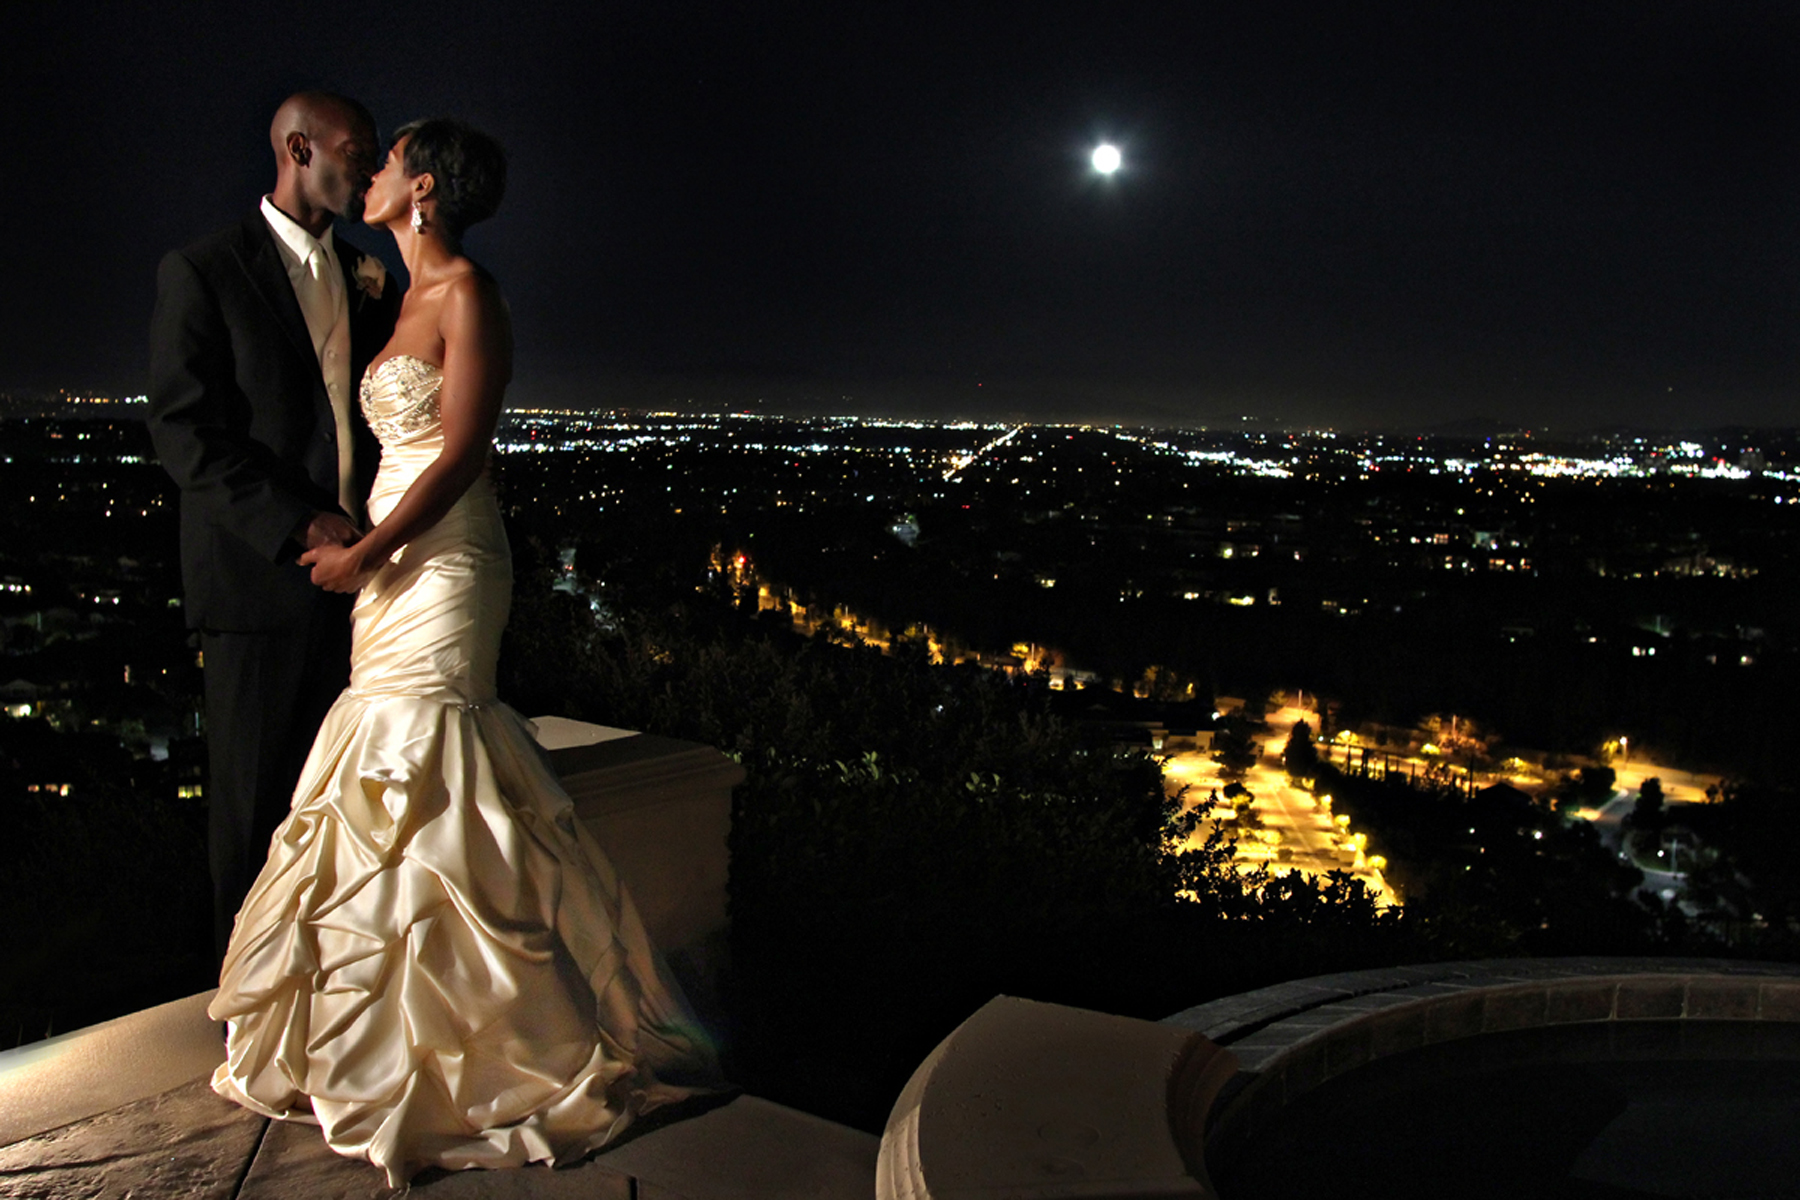 ShadowcatcherGalleryOne_SanDiegoWeddingPhotogrpaher_004.JPG